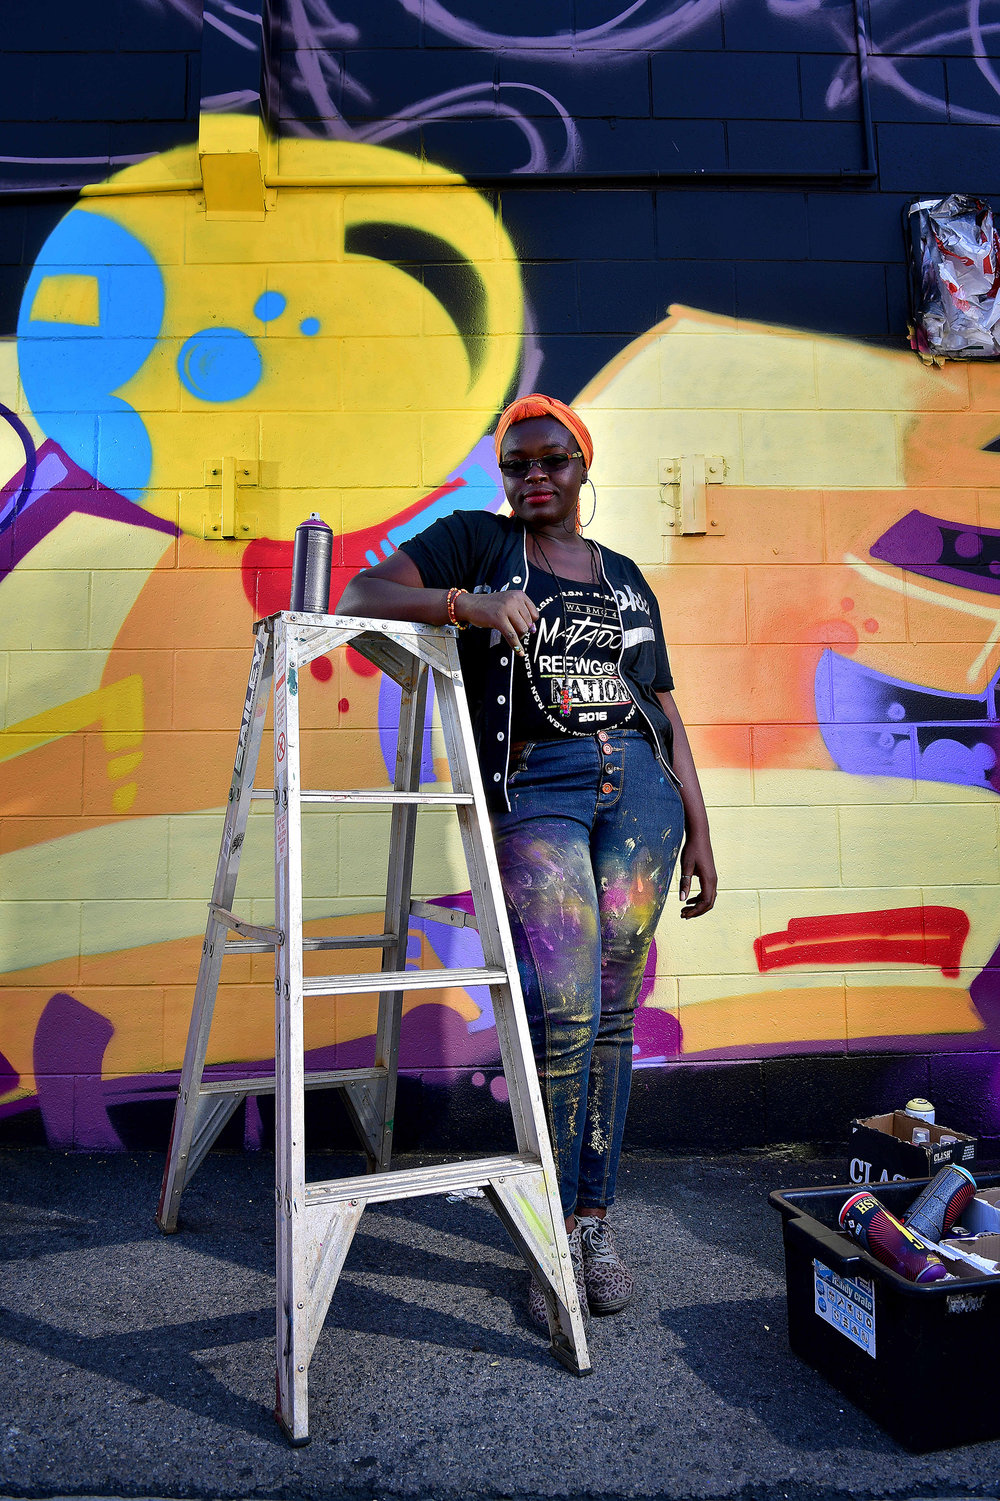 CHP_Export_173786172_Zeinixx is West  Africa's first graffiti artist visiting Adelaide for an Africa.jpg